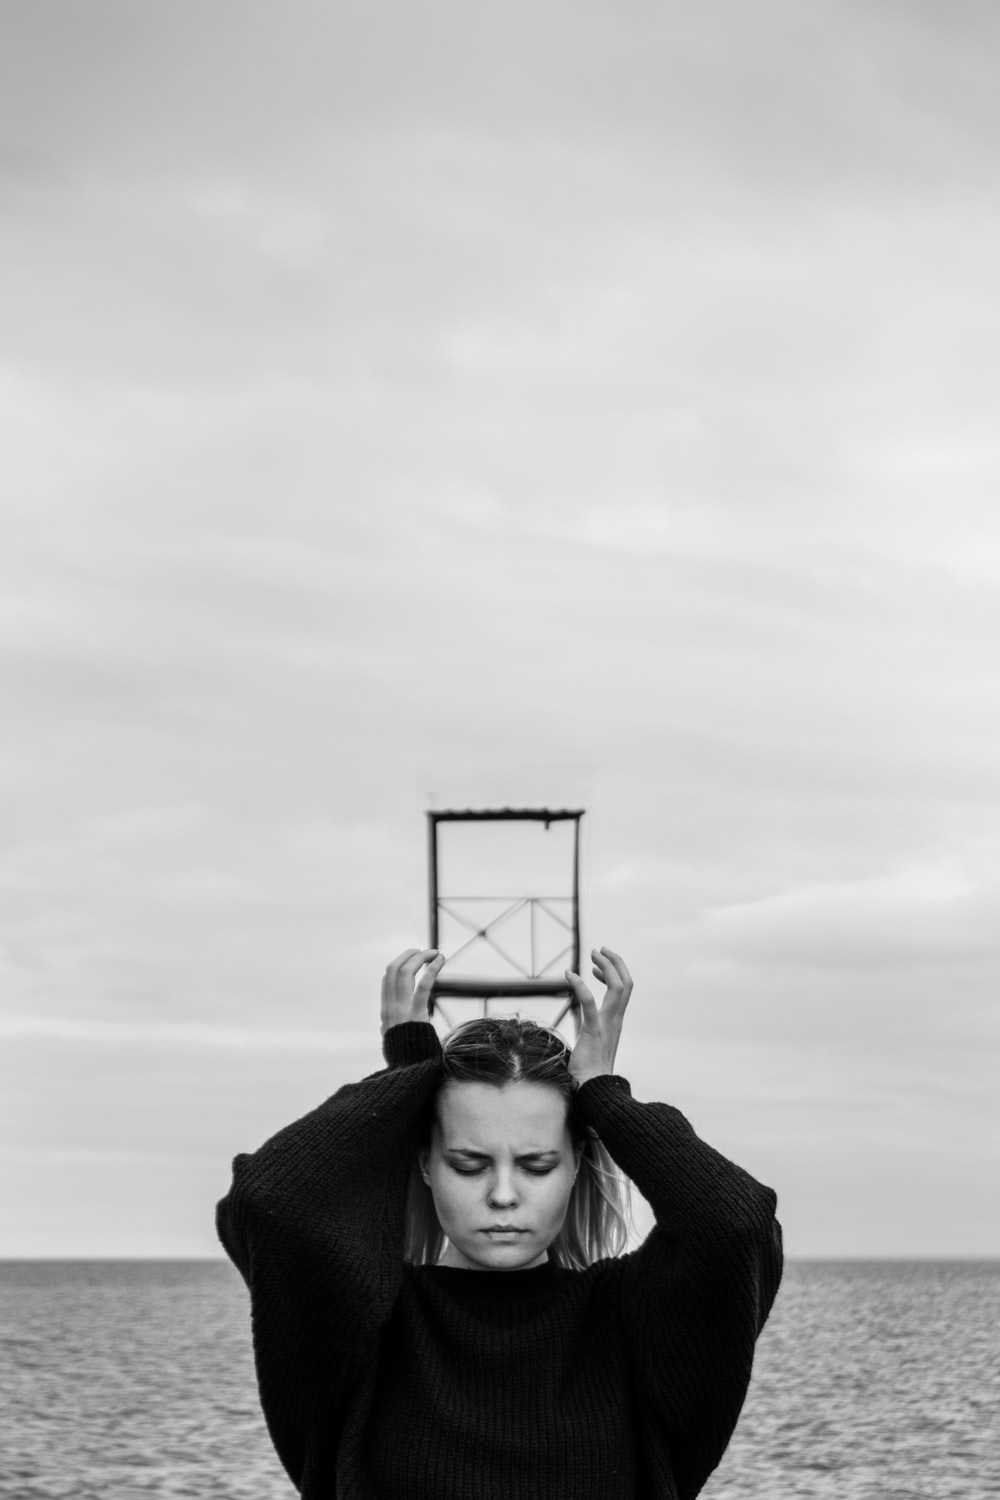 grayscale photography of woman holding square metal frame over her head